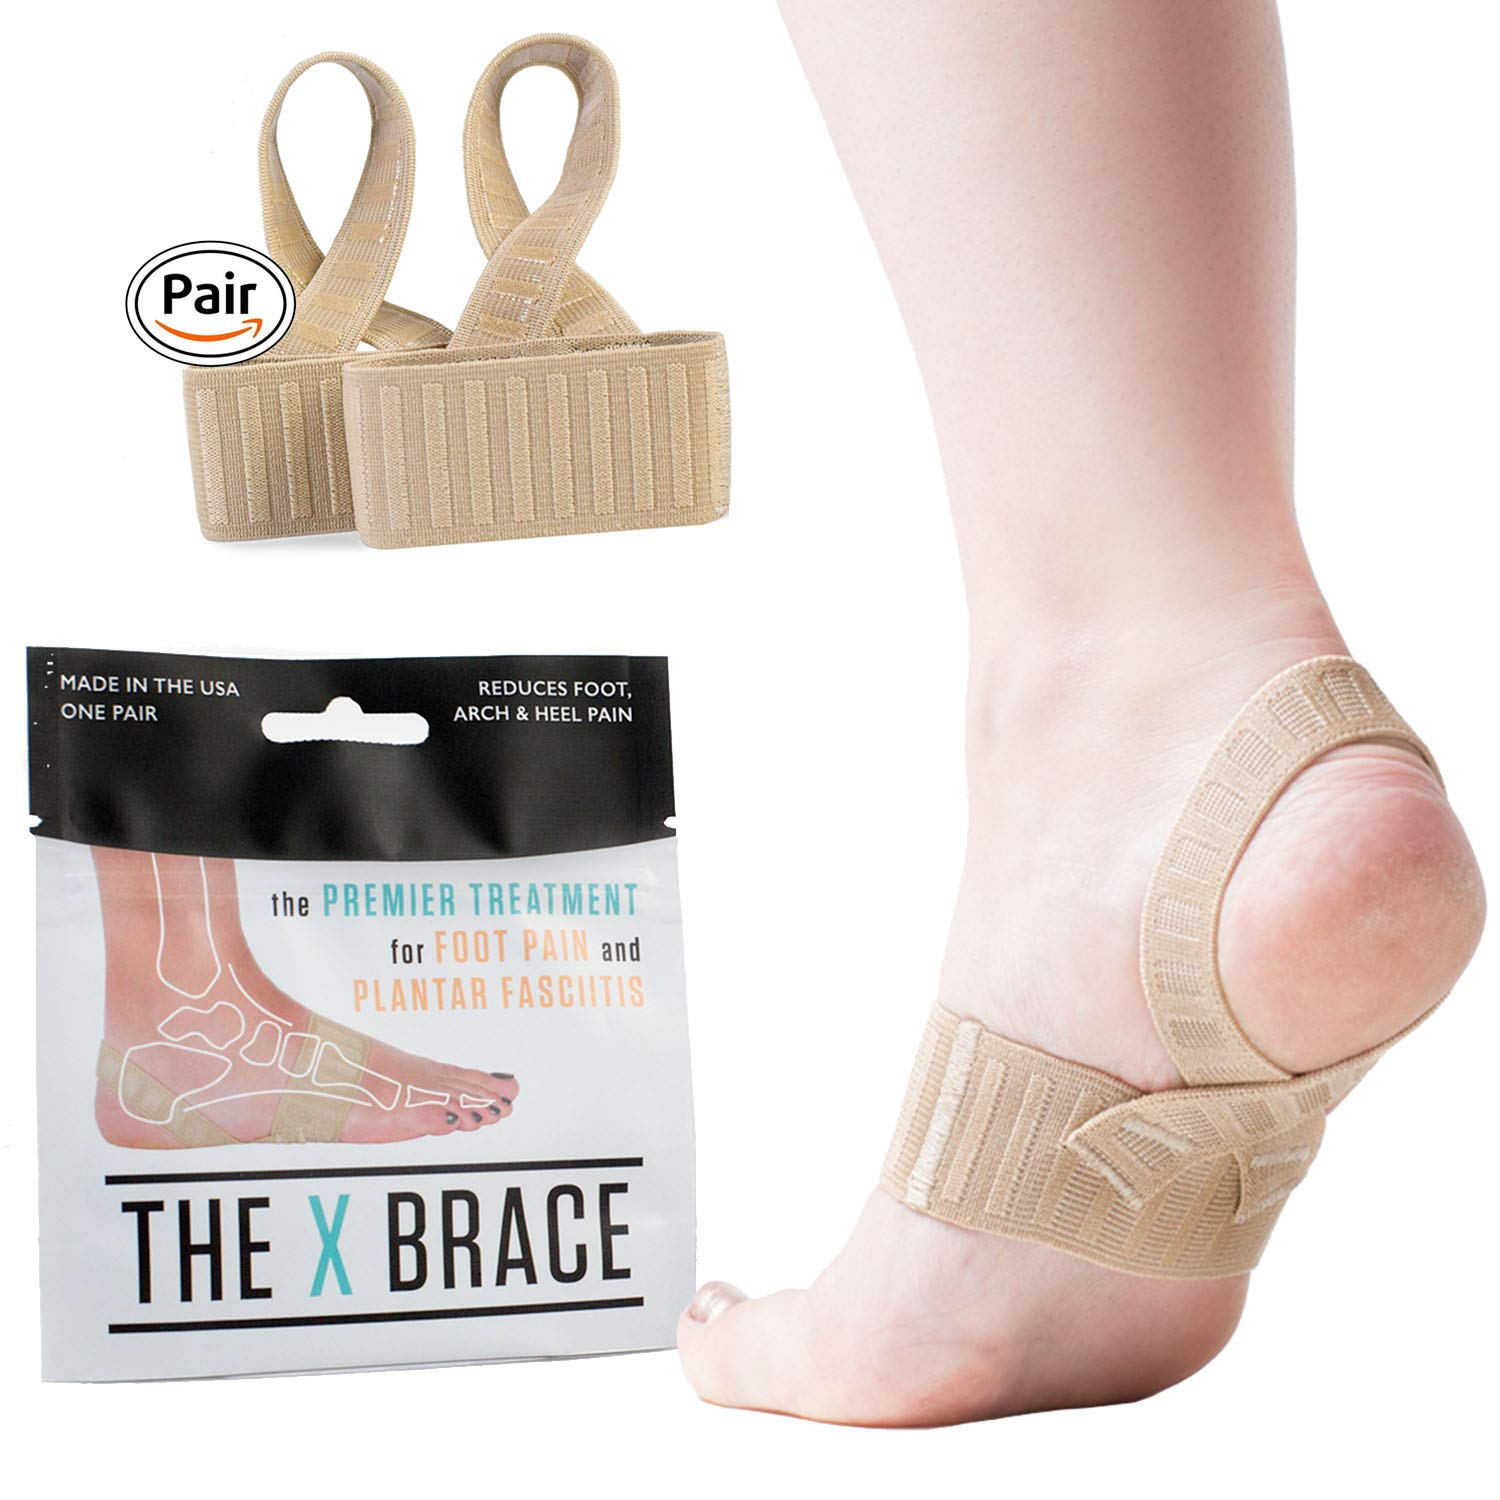 The ORIGINAL X Brace for Foot Pain - LOGO FREE - All Day Treatment for Plantar Fasciitis, Sever's Disease & Heel Pain with Gentle Arch Support. ((3) SMALL, Biege)